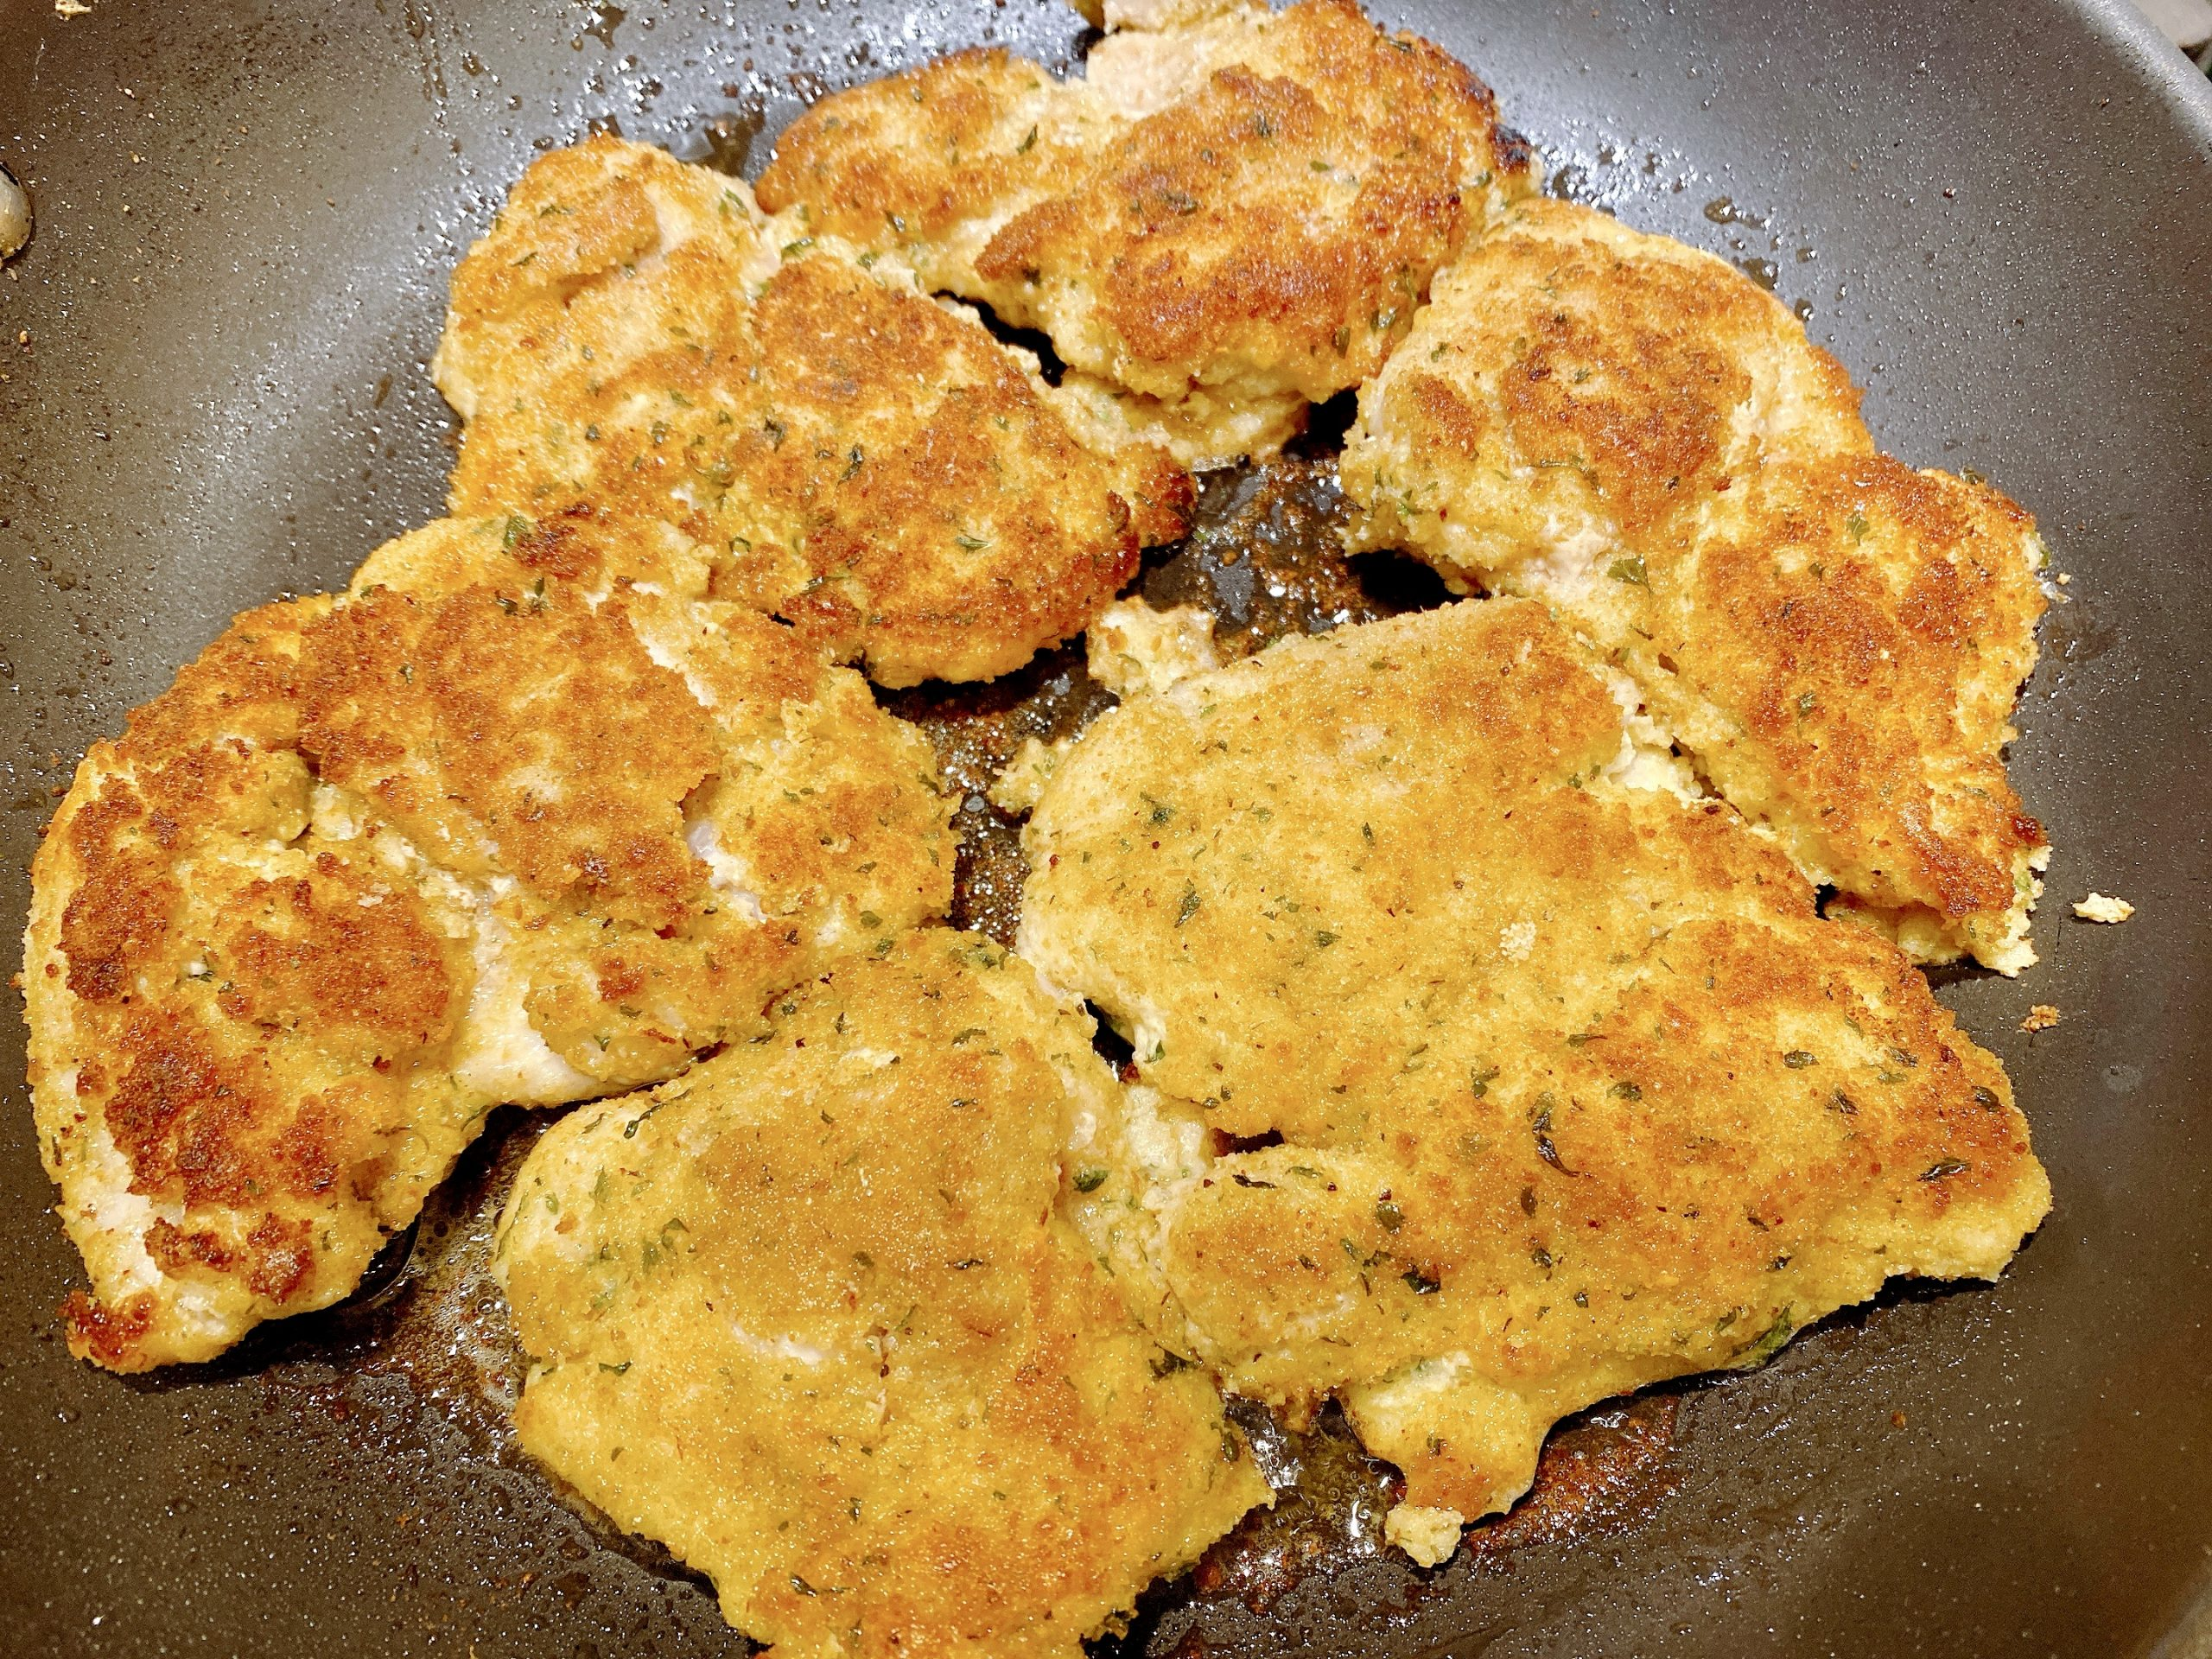 Breaded chicken breasts fried in pan of olive oil